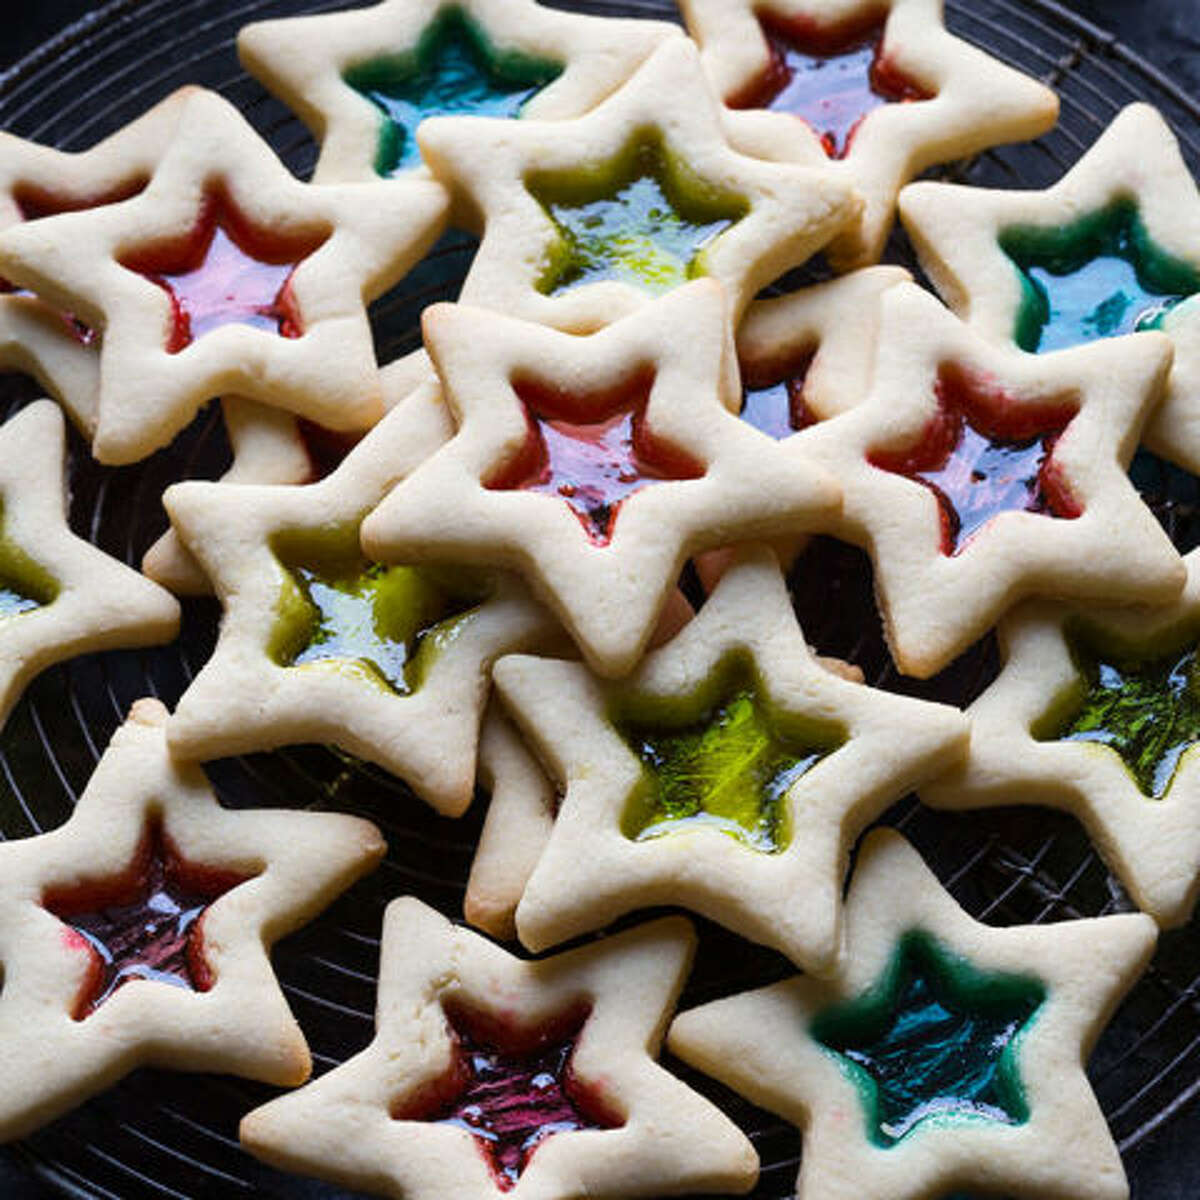 GLUTEN-FREE STAINED GLASS COOKIES These beauties will definitely get you noticed at the office cookie swap. They're almost too pretty to eat - almost. Get the recipe at Noshtastic. RELATED: 14 Cookies You Can Literally Make In a Bowl - No Baking Required